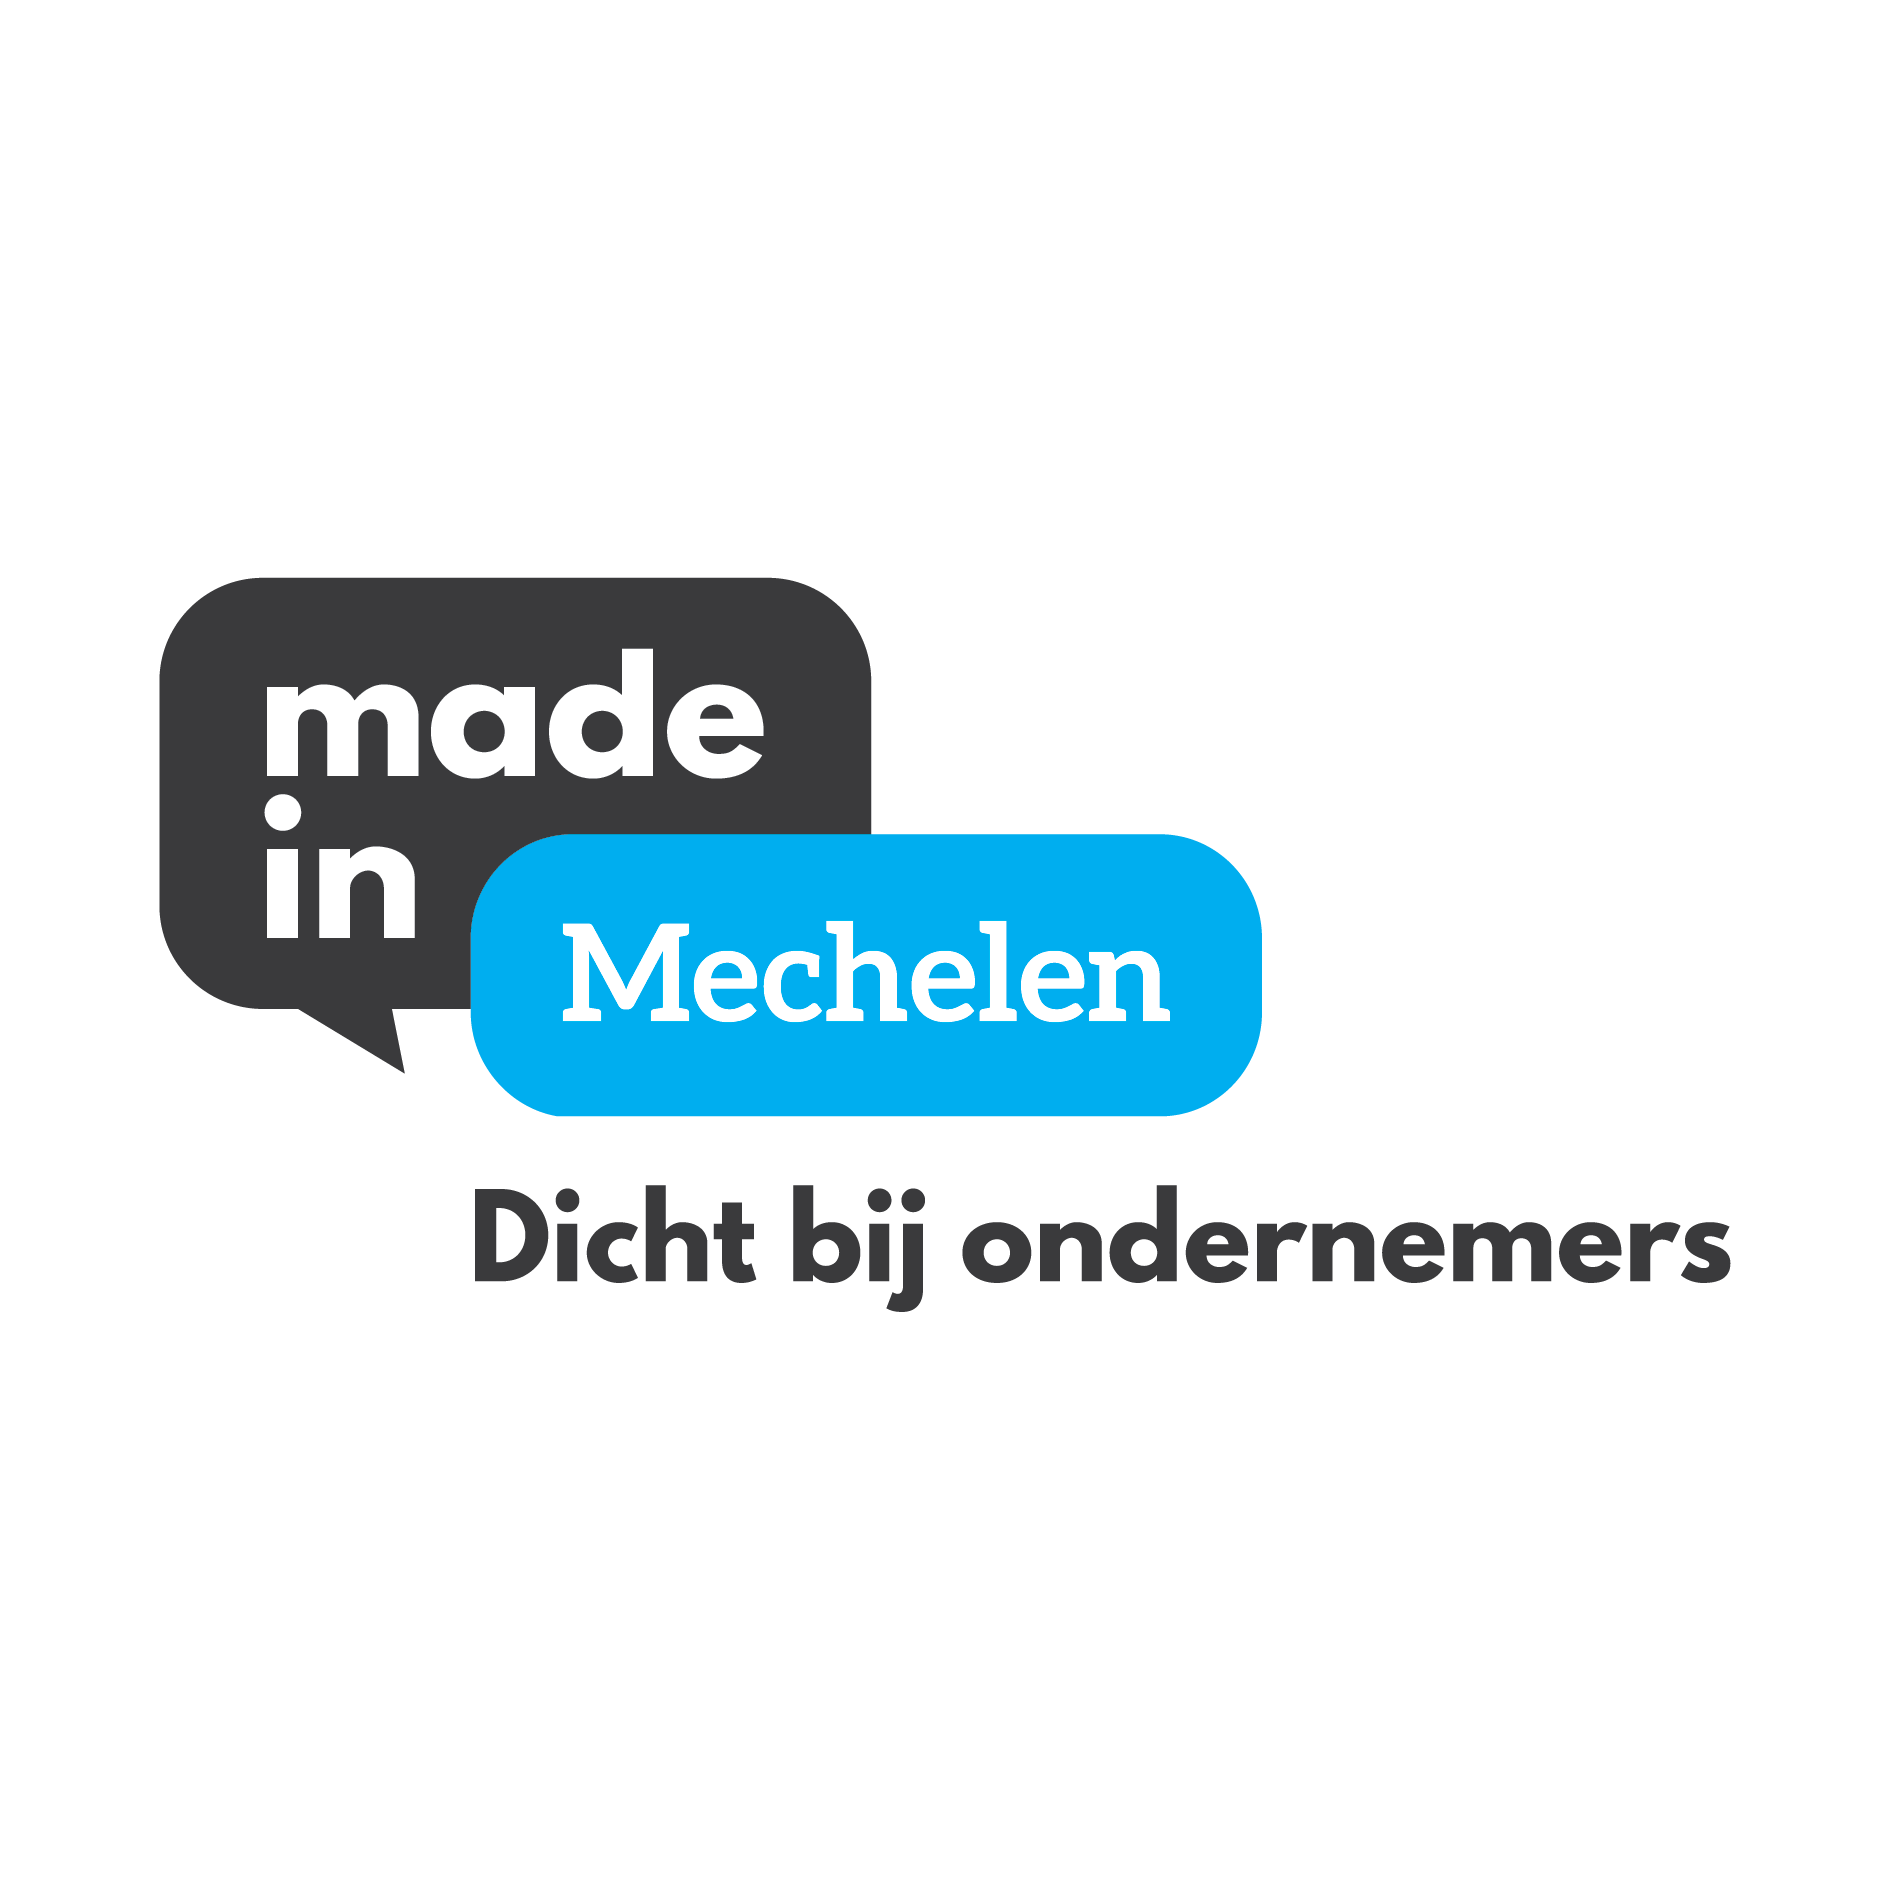 Stratum Quercus featured on made in Mechelen! -